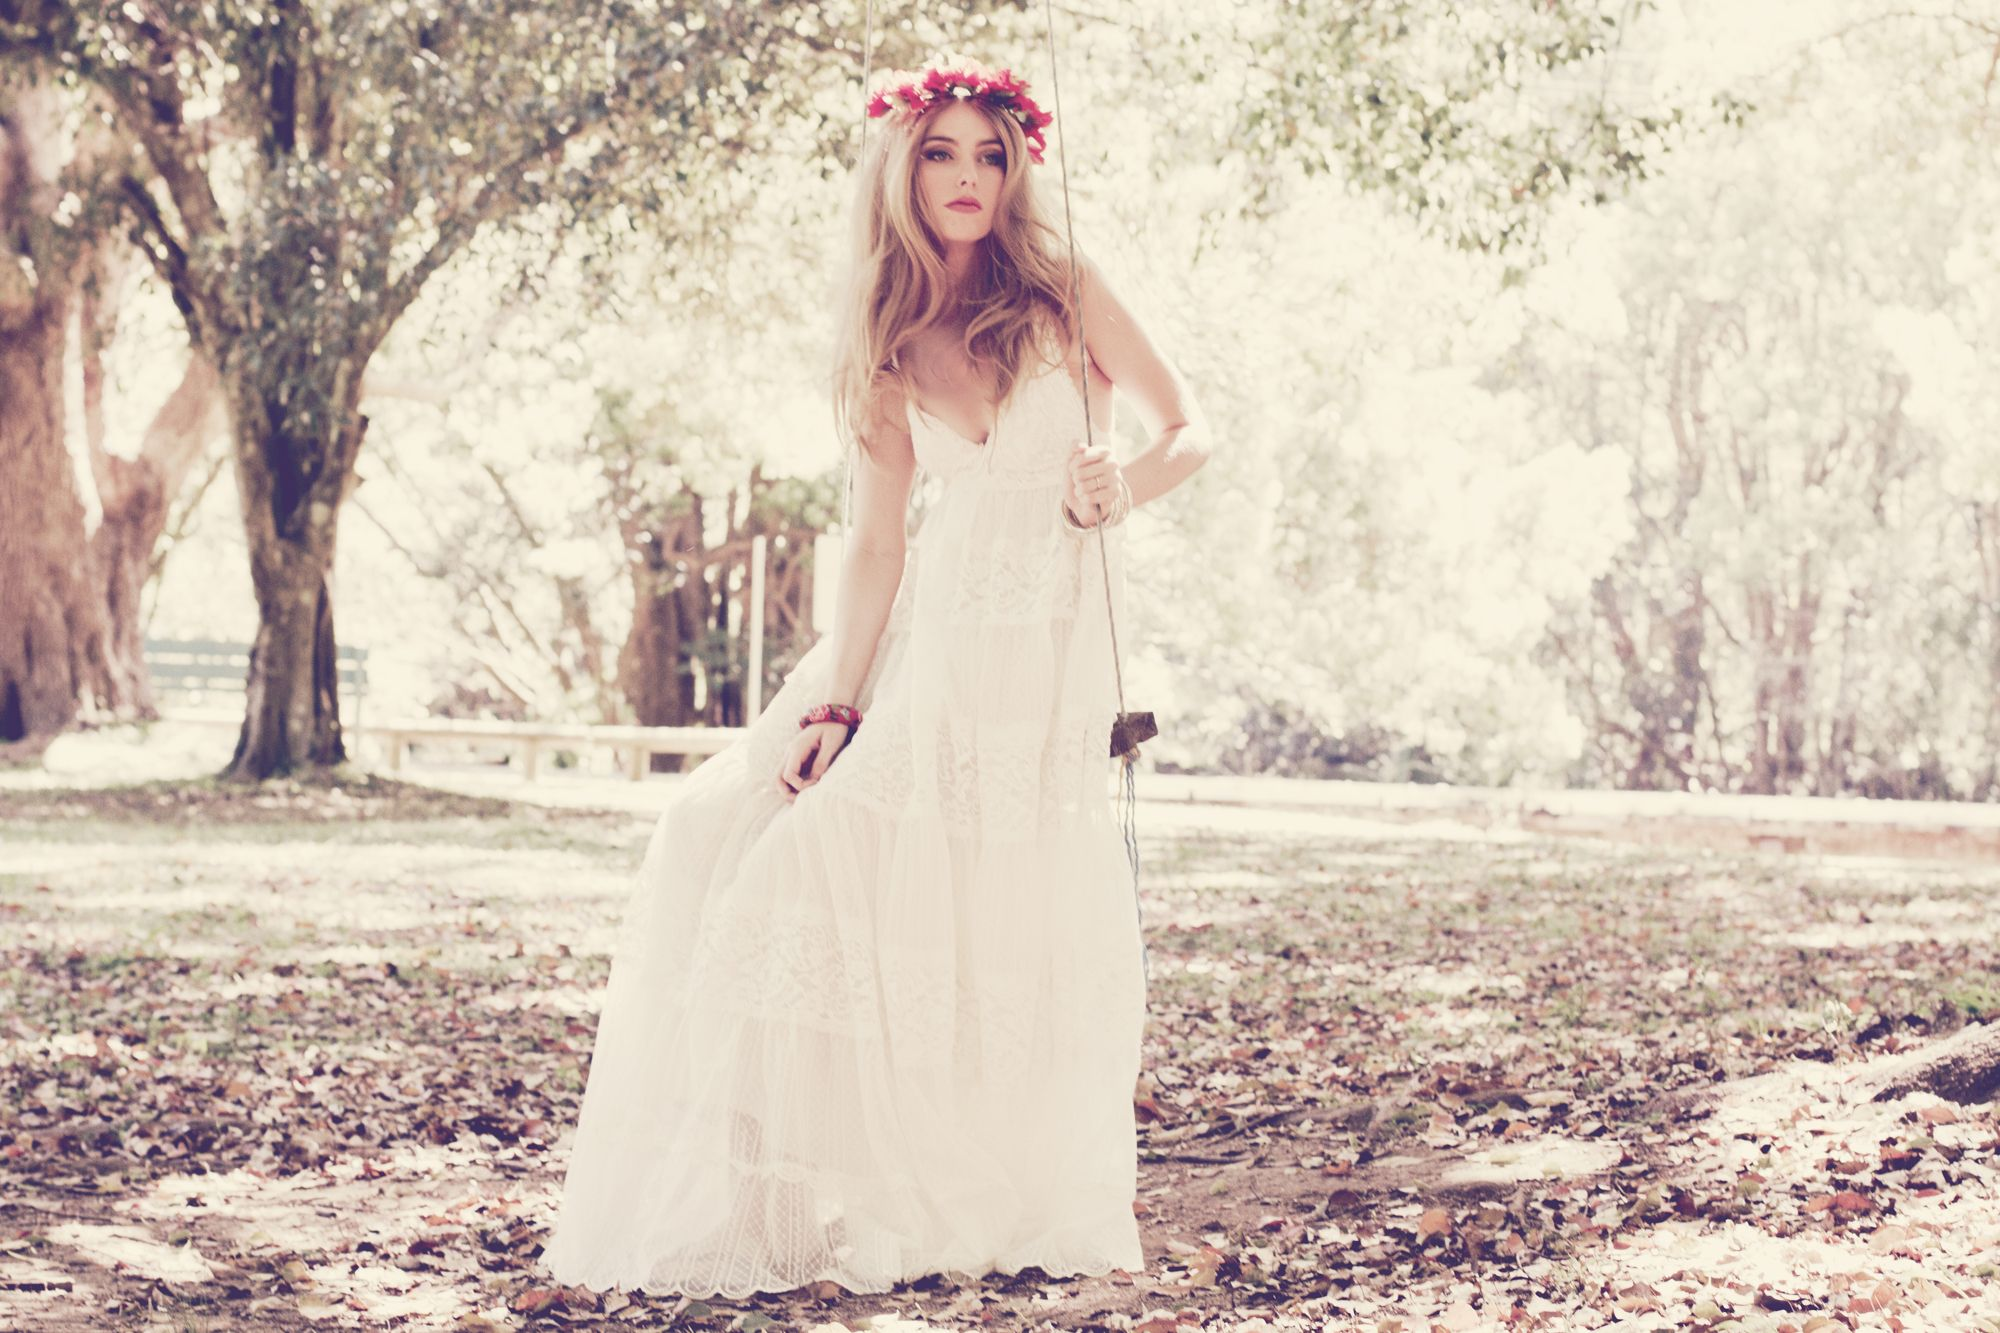 Boho beach bride lace wedding dresses all images and dresses by